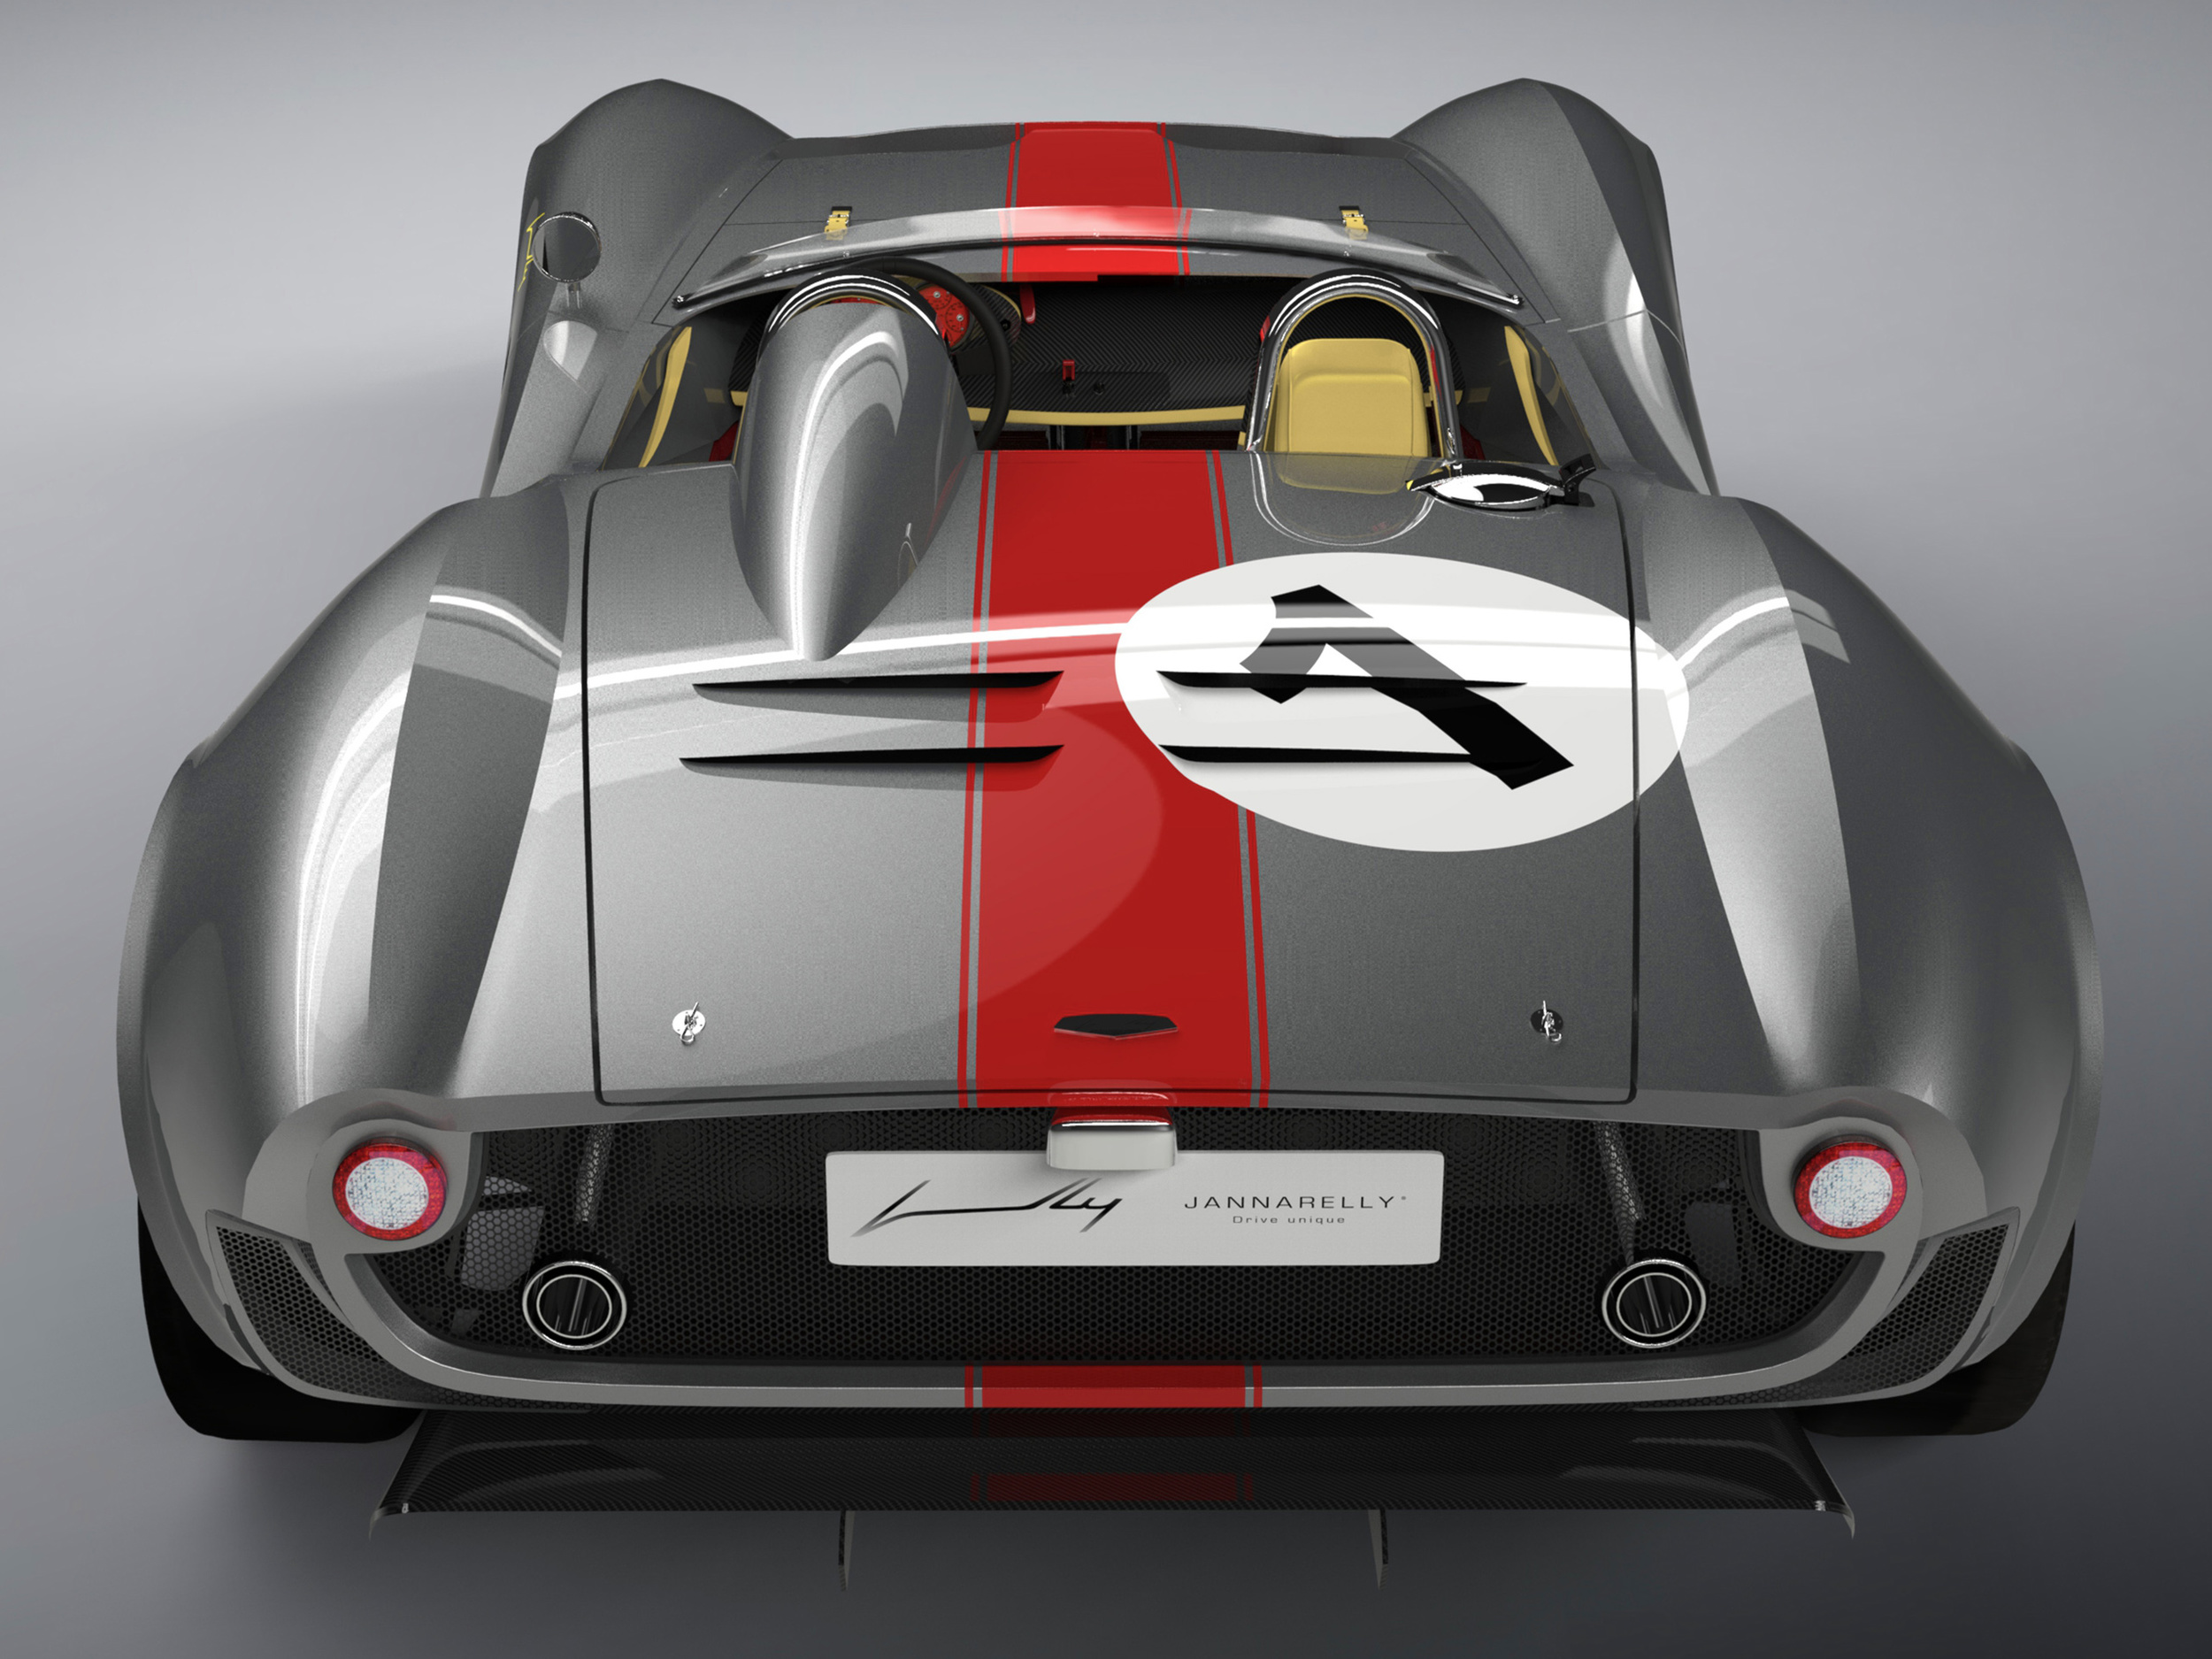 Jannarelly-Design-1-rear3-GR-A3.jpg